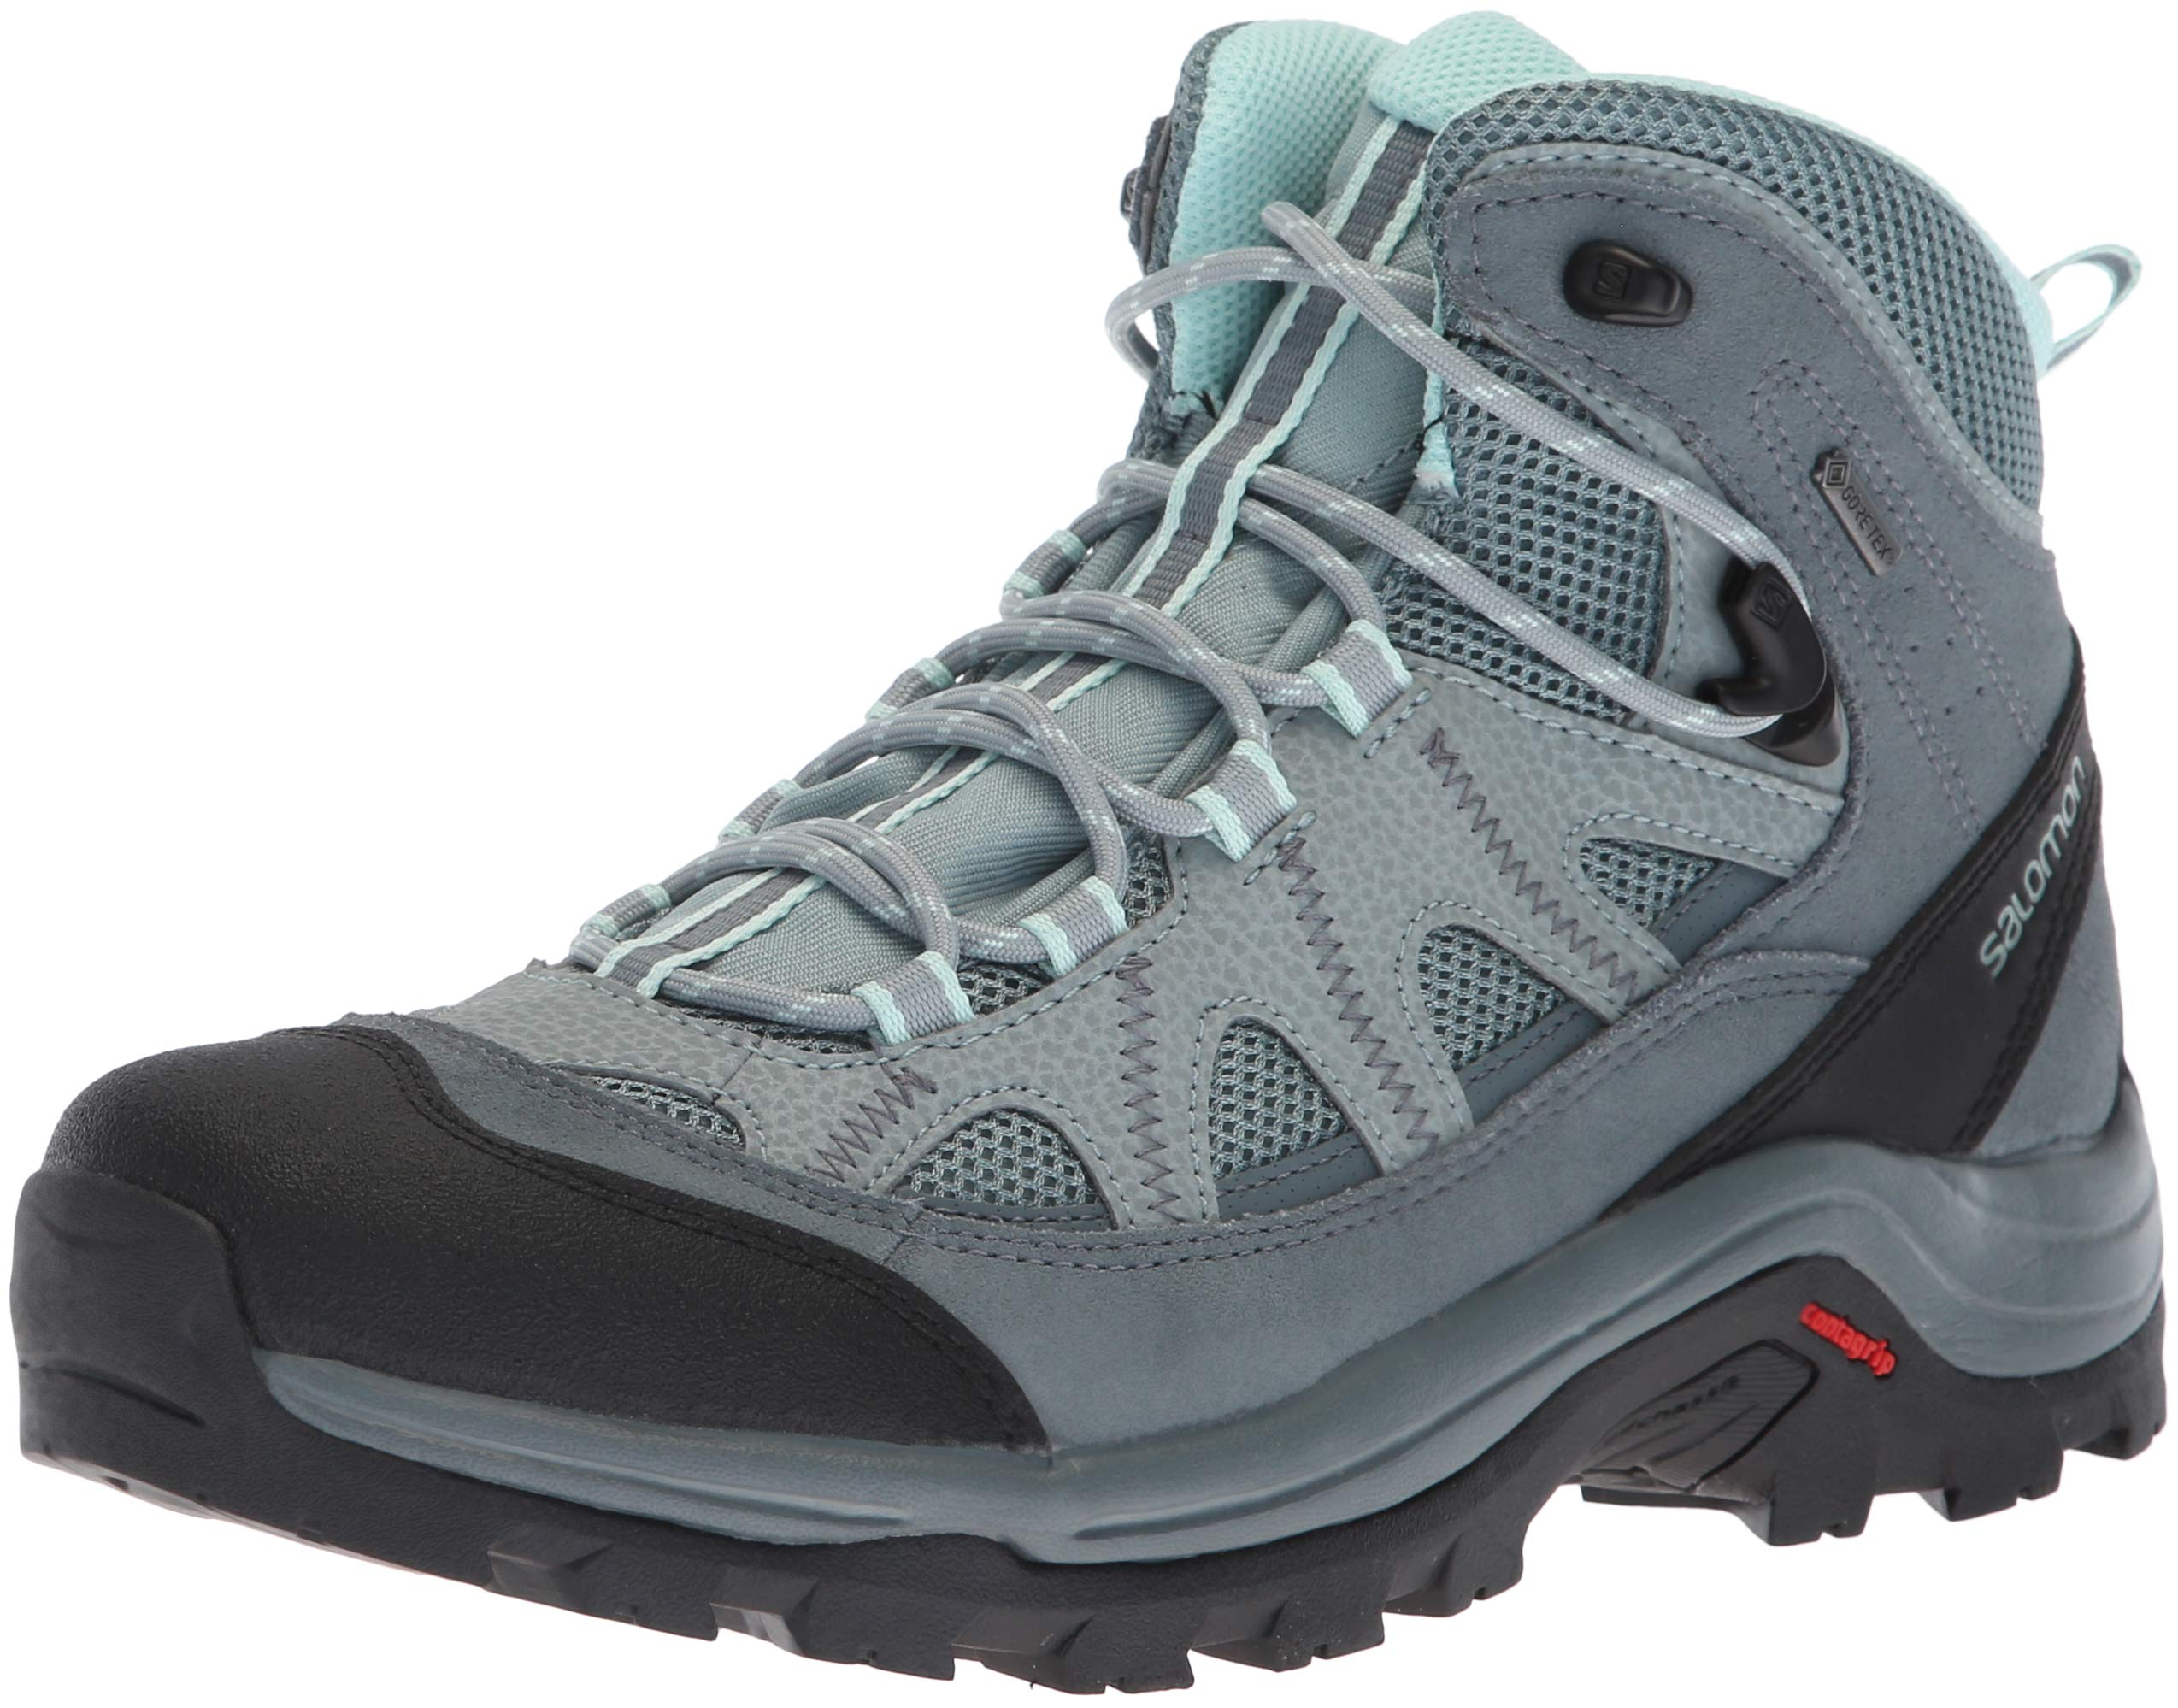 Salomon Women's Authentic LTR GTX W Backpacking Boot, Lead/Stormy Weather/Eggshell Blue, 9.5 B US